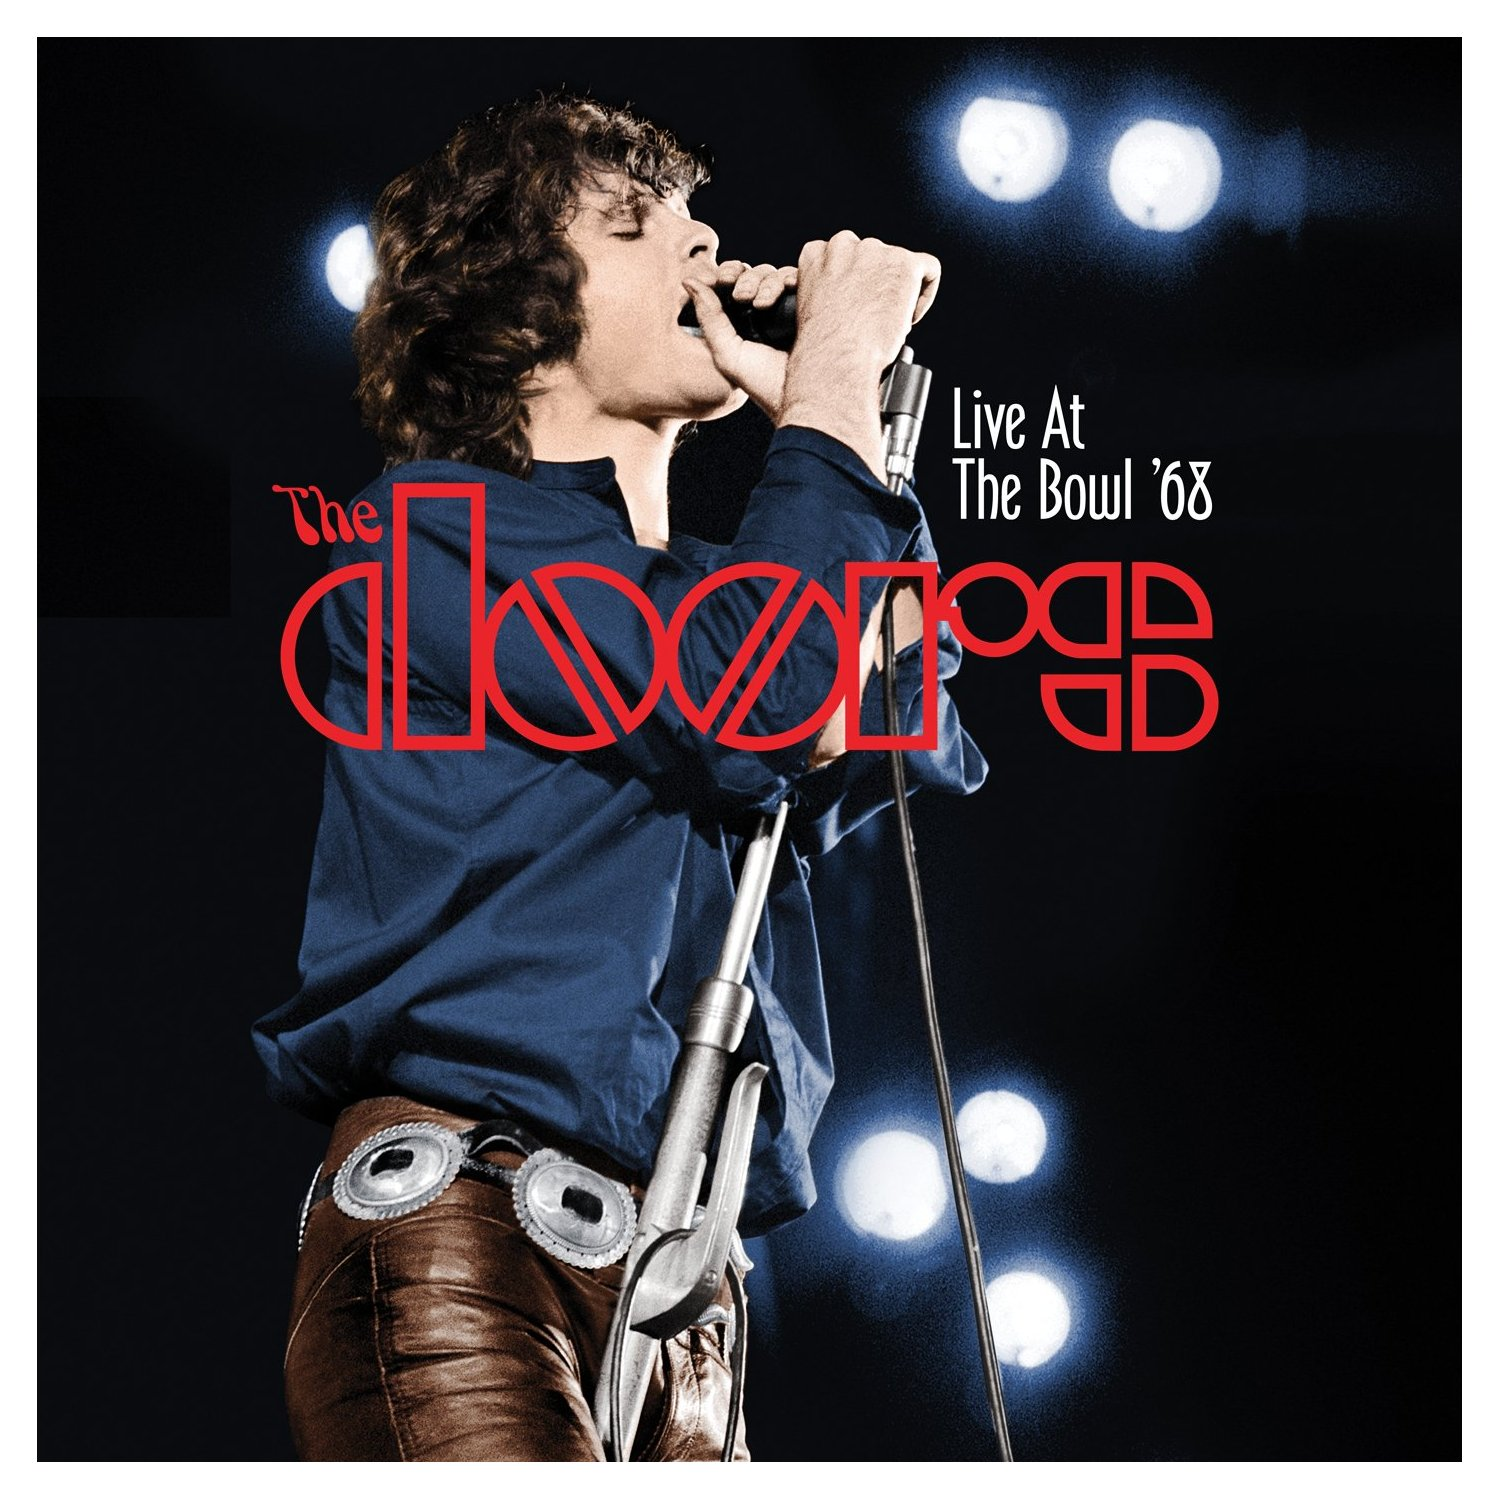 DVD Review The Doors - Live at the Bowl u002768  sc 1 st  Backstage Auctions & ALL ACCESS: DVD Review: The Doors - Live at the Bowl u002768